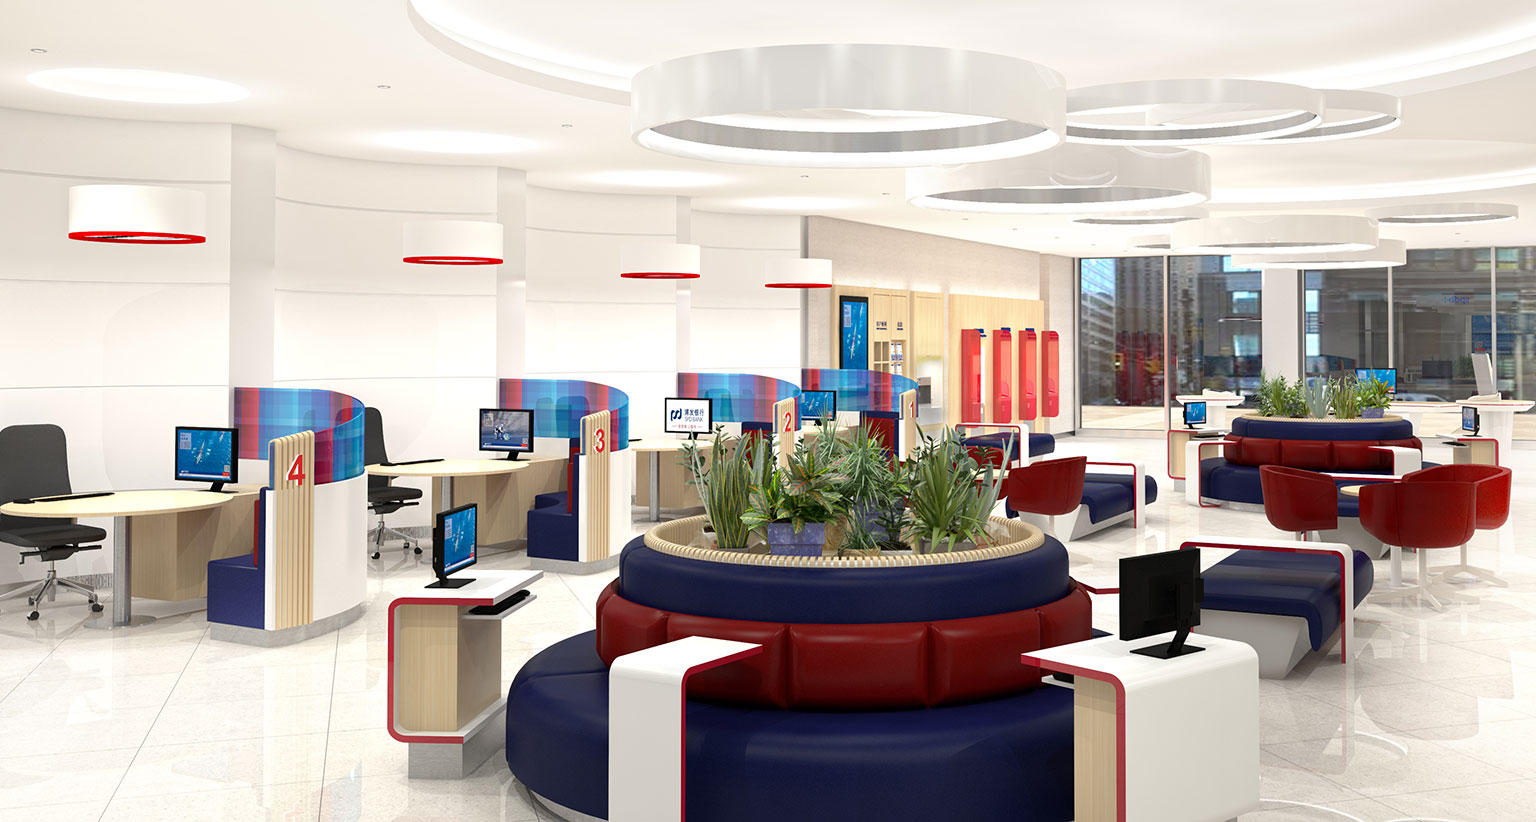 The final branch design creates a familiar welcoming feeling bolstered by the latest banking technology